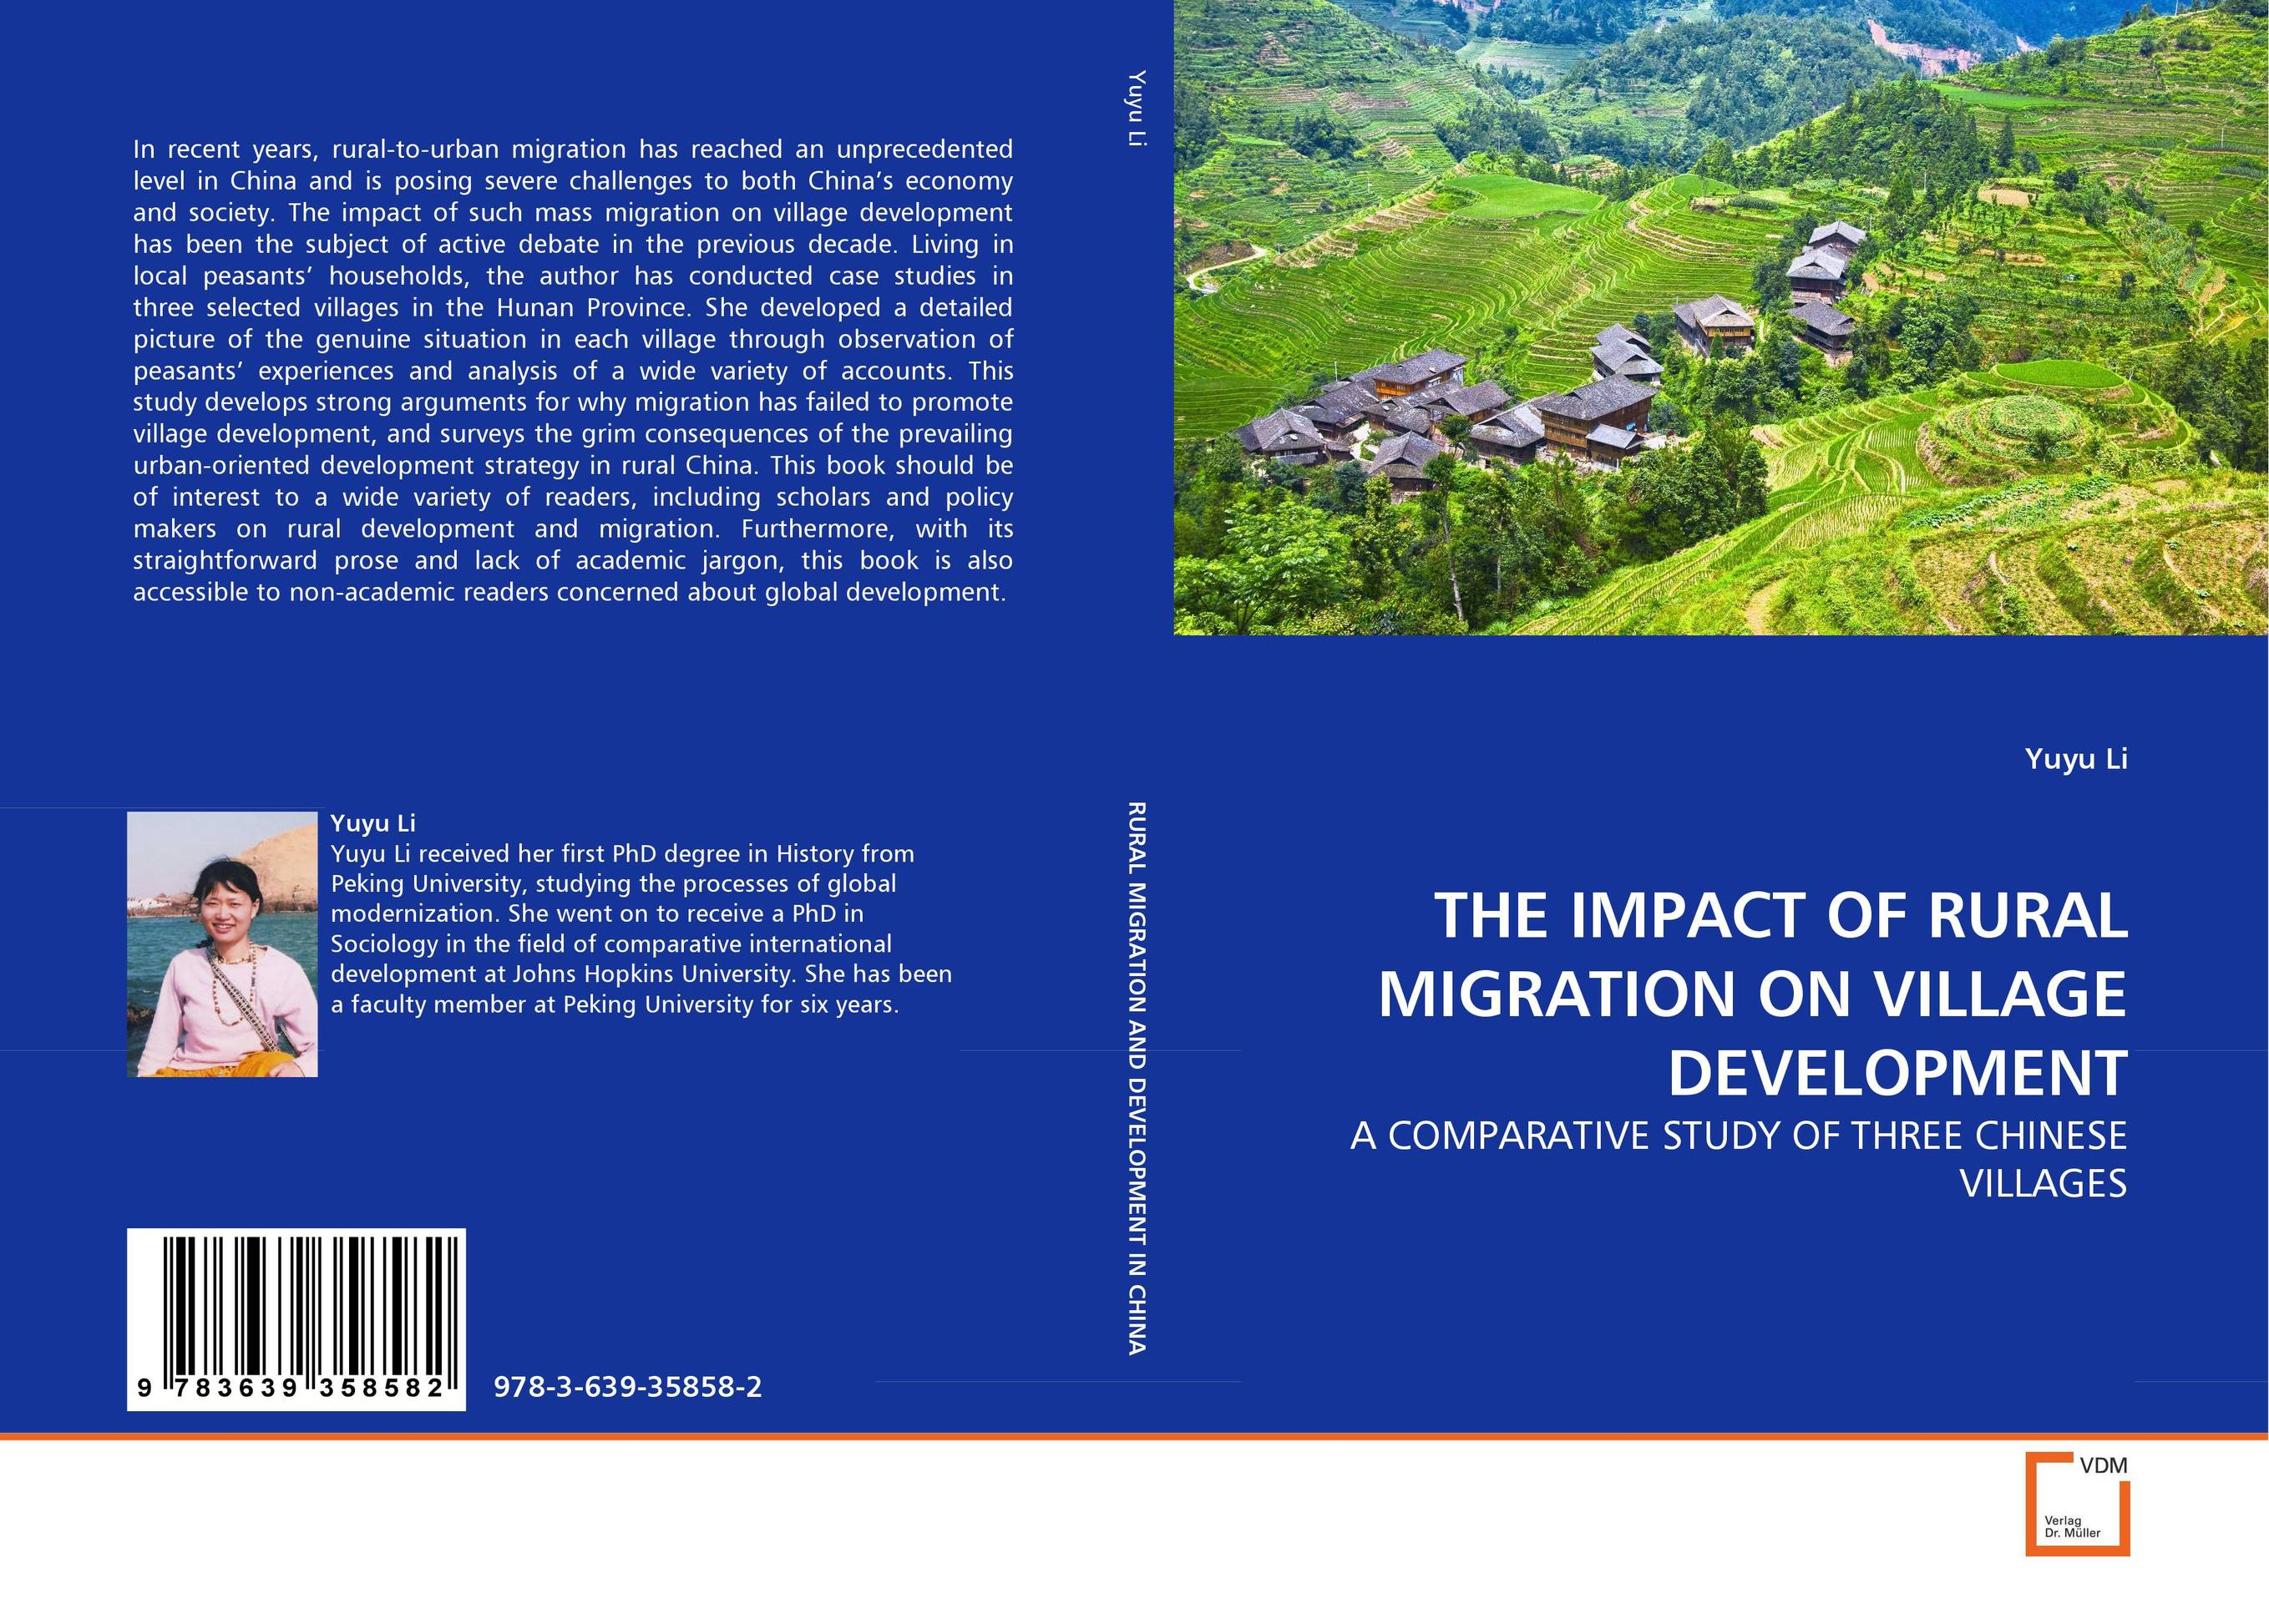 THE IMPACT OF RURAL MIGRATION ON VILLAGE DEVELOPMENT lawrence maumbi michelo analysis of nongovernmental organisation in rural development